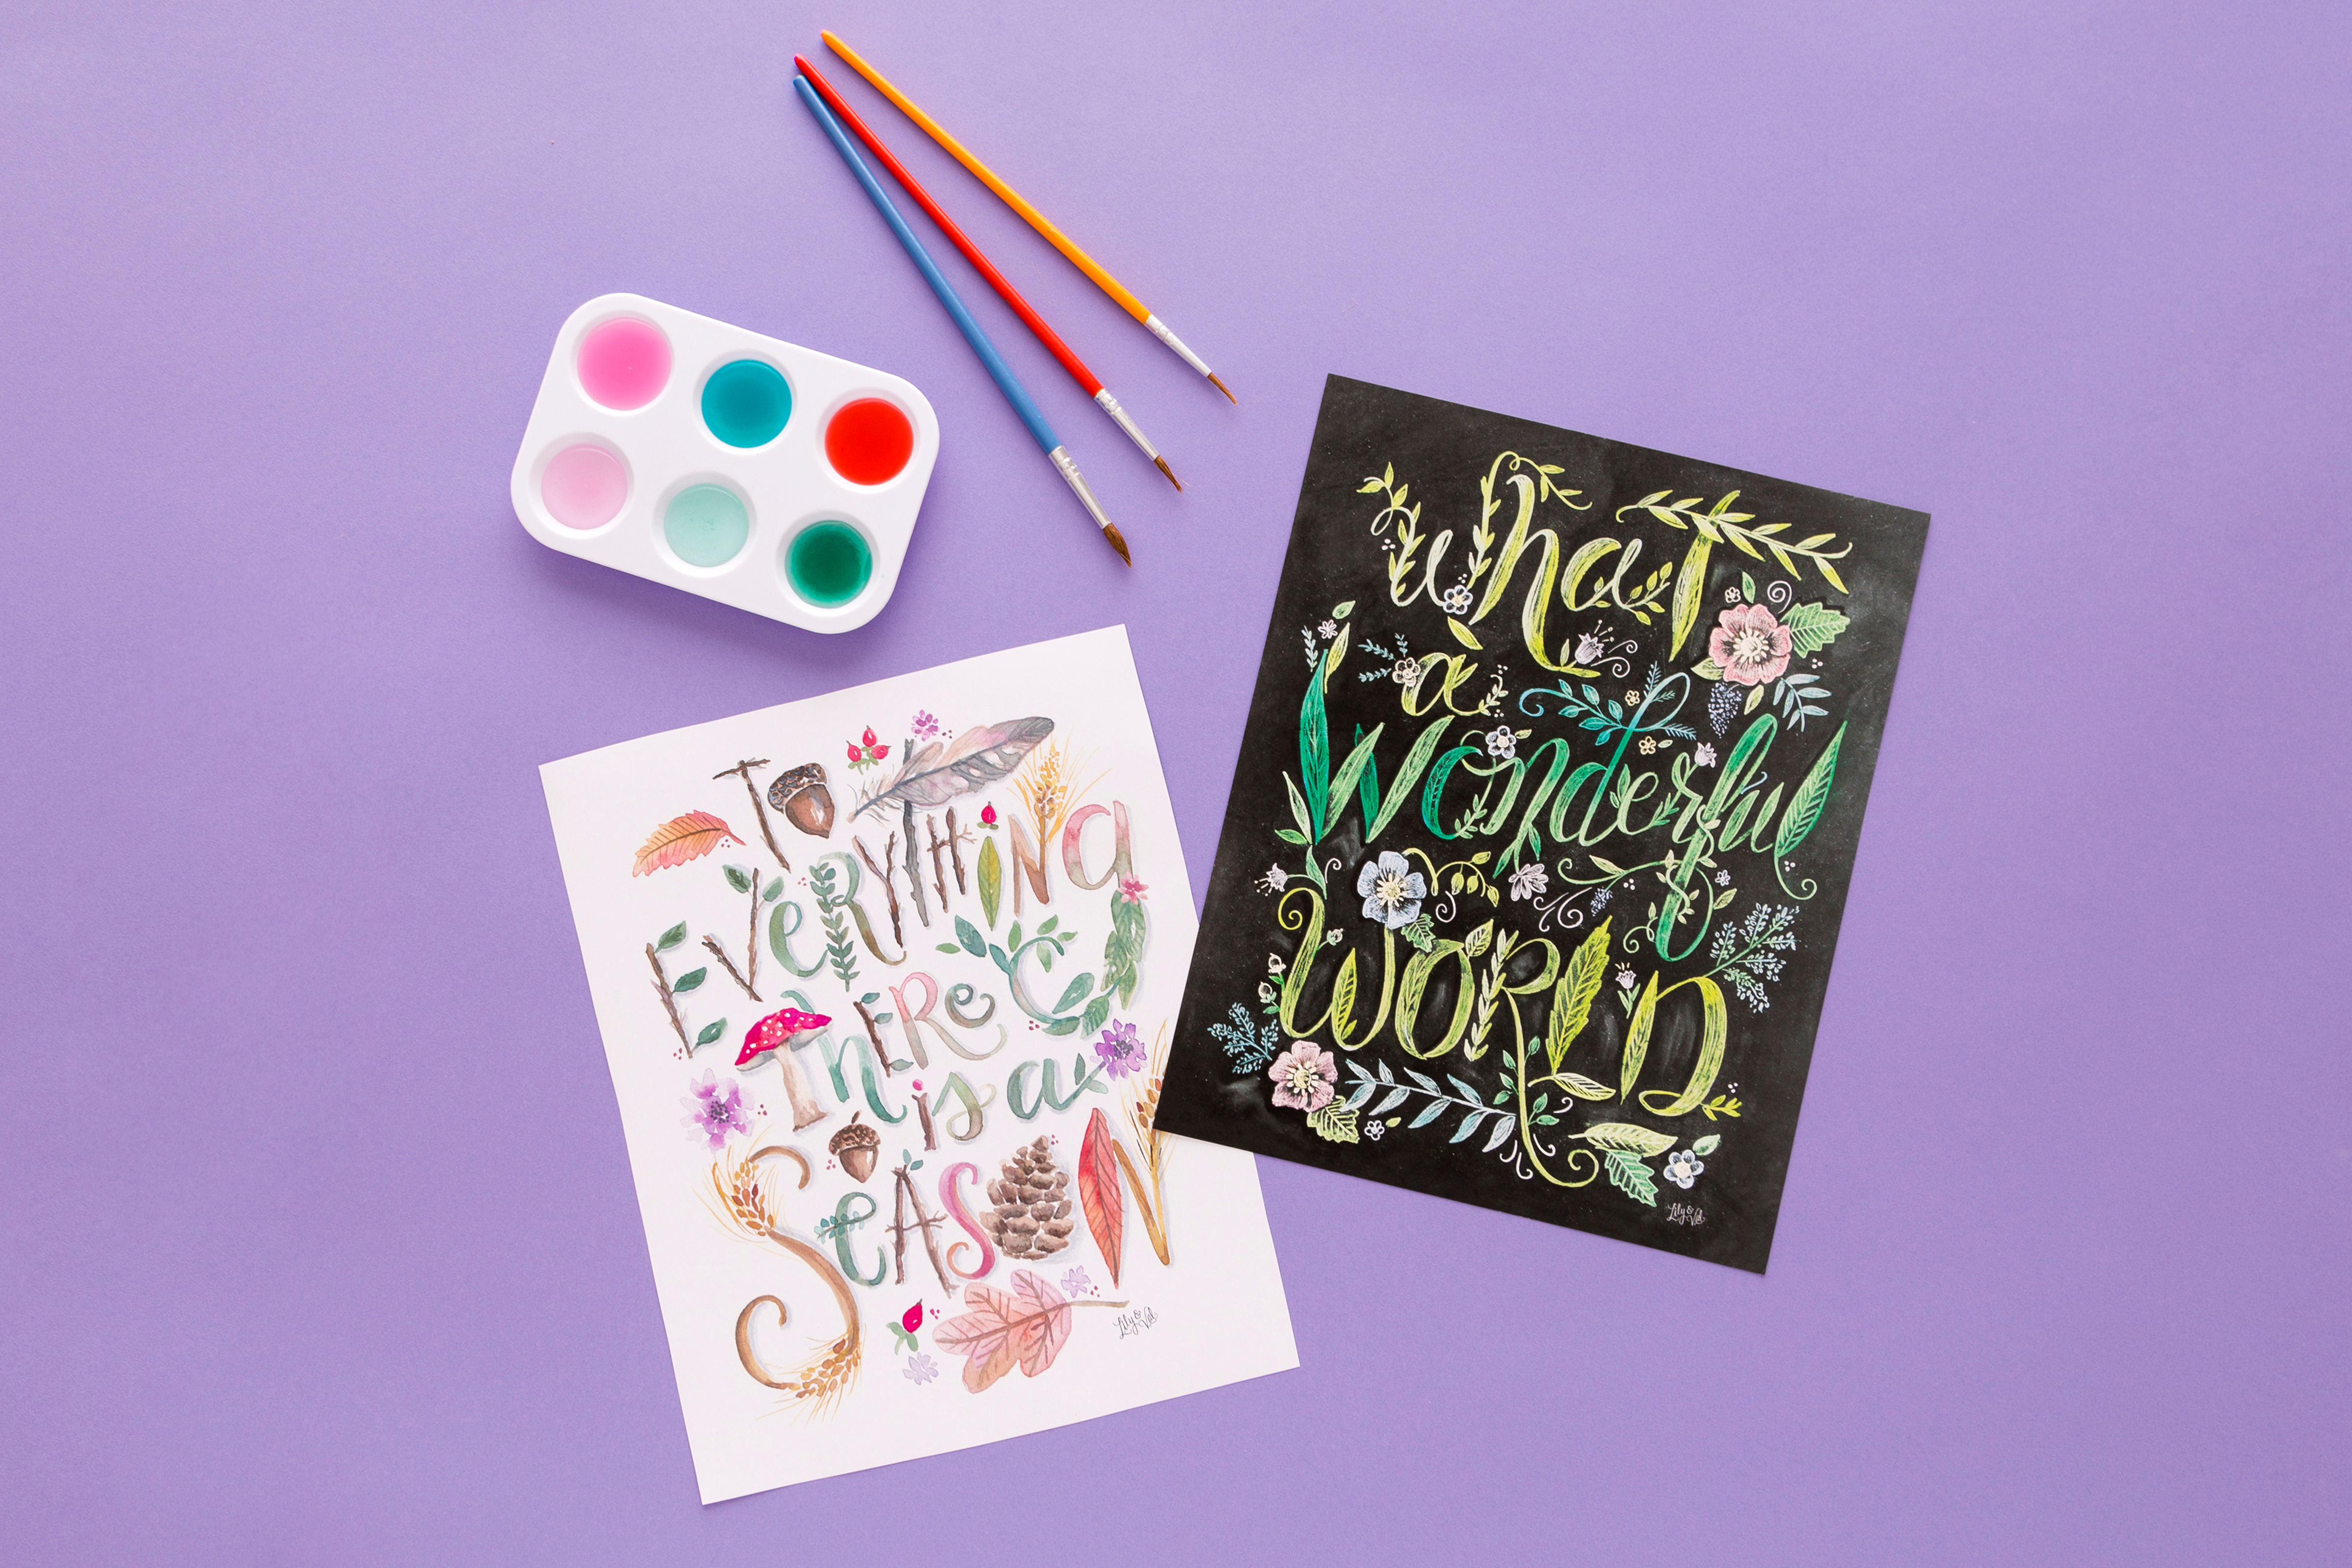 Illustrated lettering prints by Lily & Val